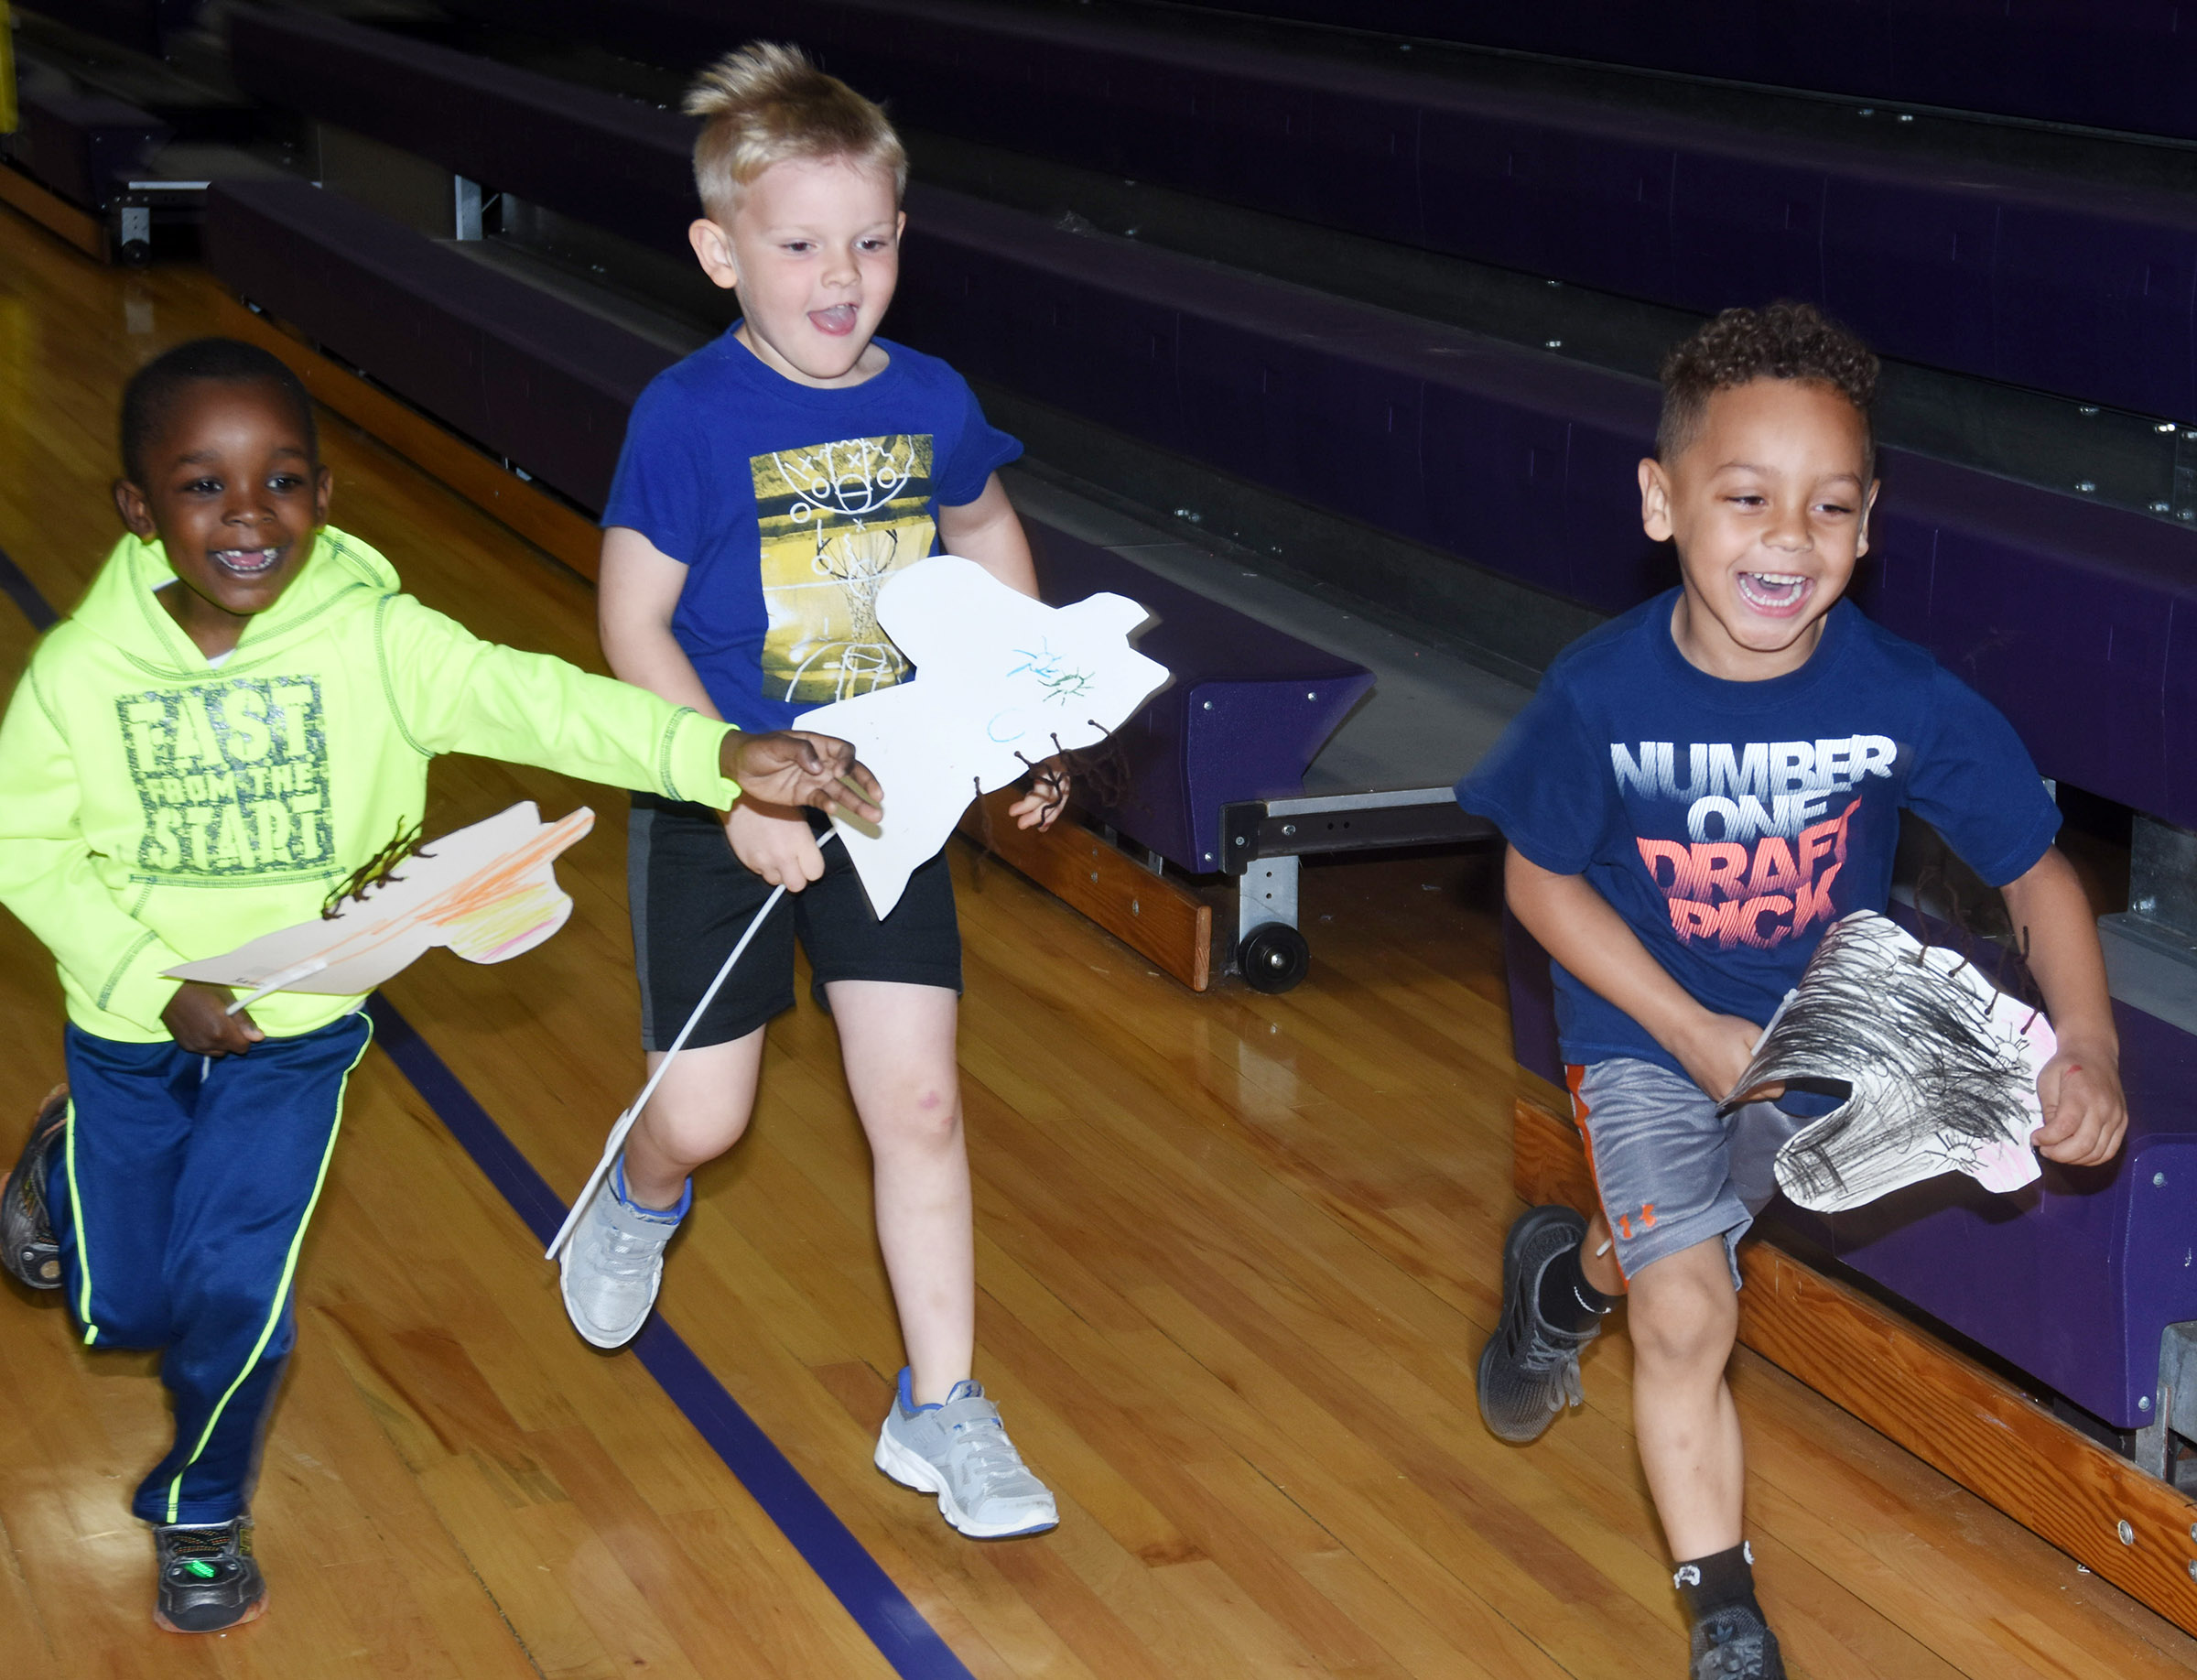 From left, CES preschool students Xavien Smith, Hoyt Davis and Jasiahas Anderson race.